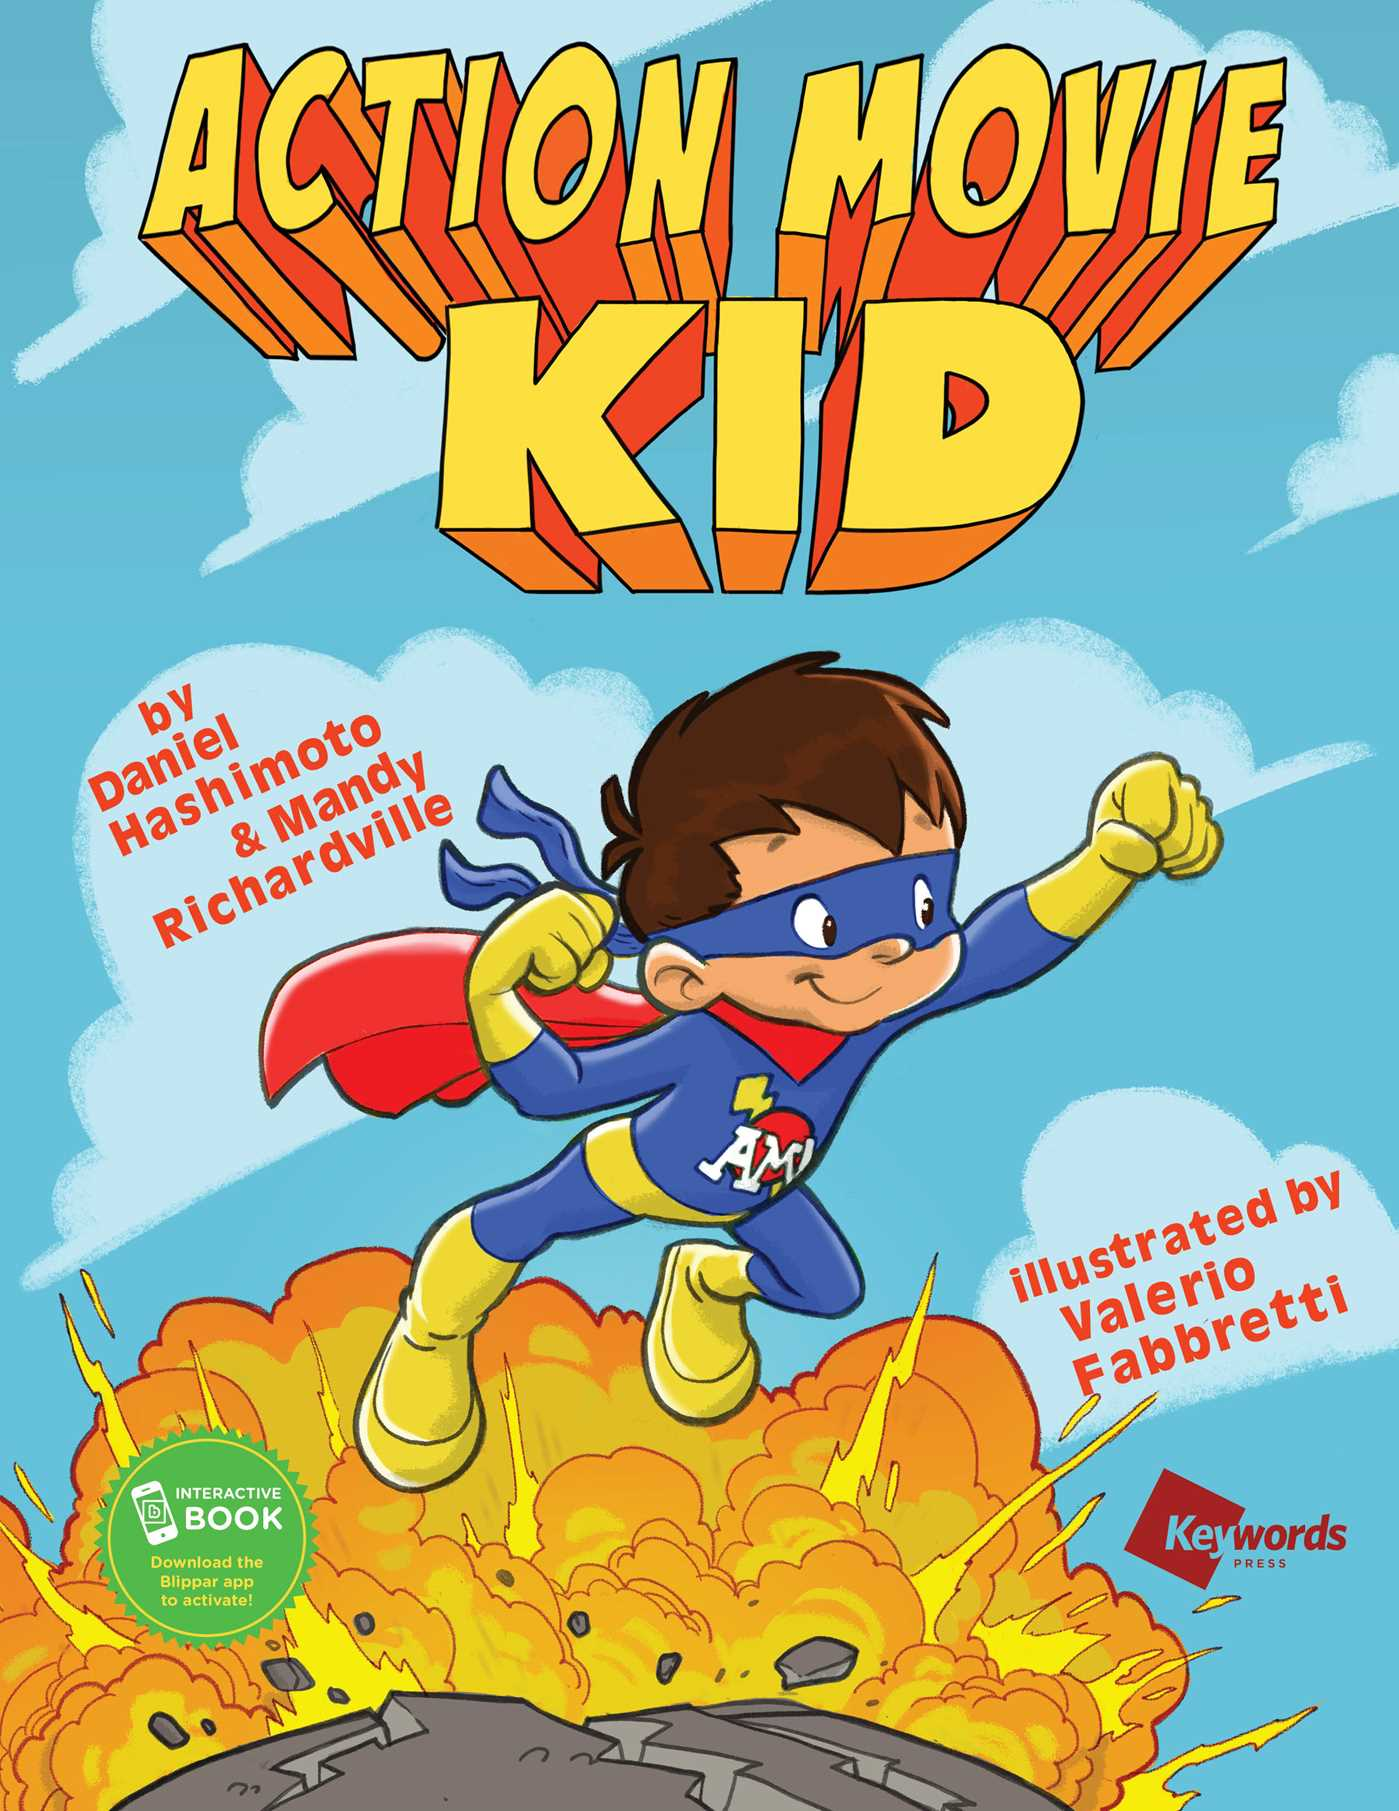 Children S Book Back Cover Text : Action movie kid book by daniel hashimoto mandy